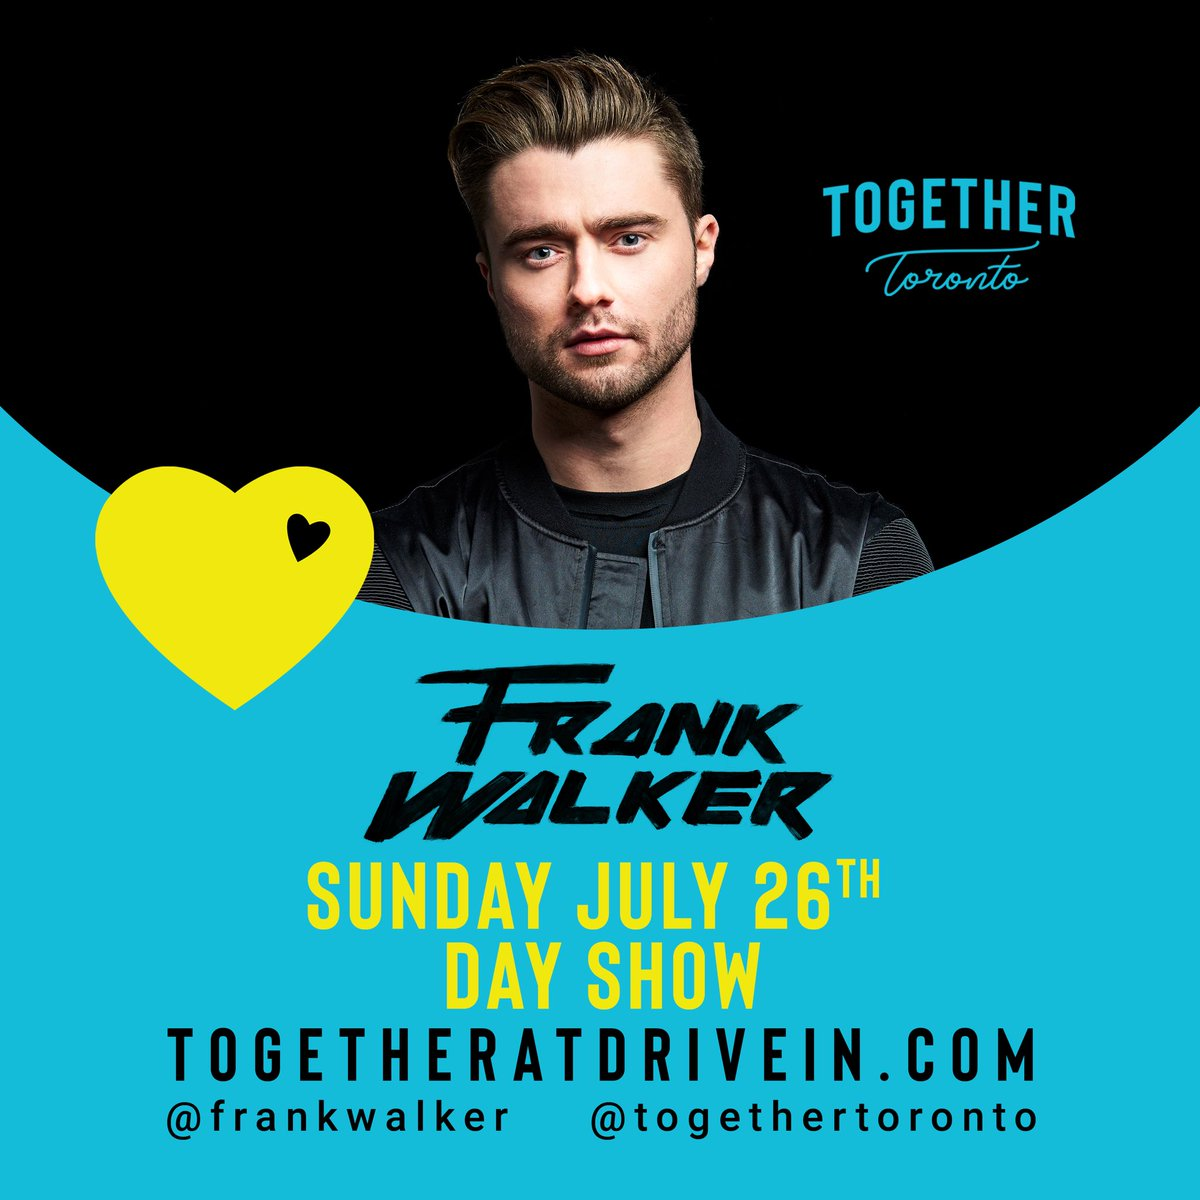 @TogetherToronto this Sunday! 4:45 - 5:45 at the Newmarket drive-in! Let's goo